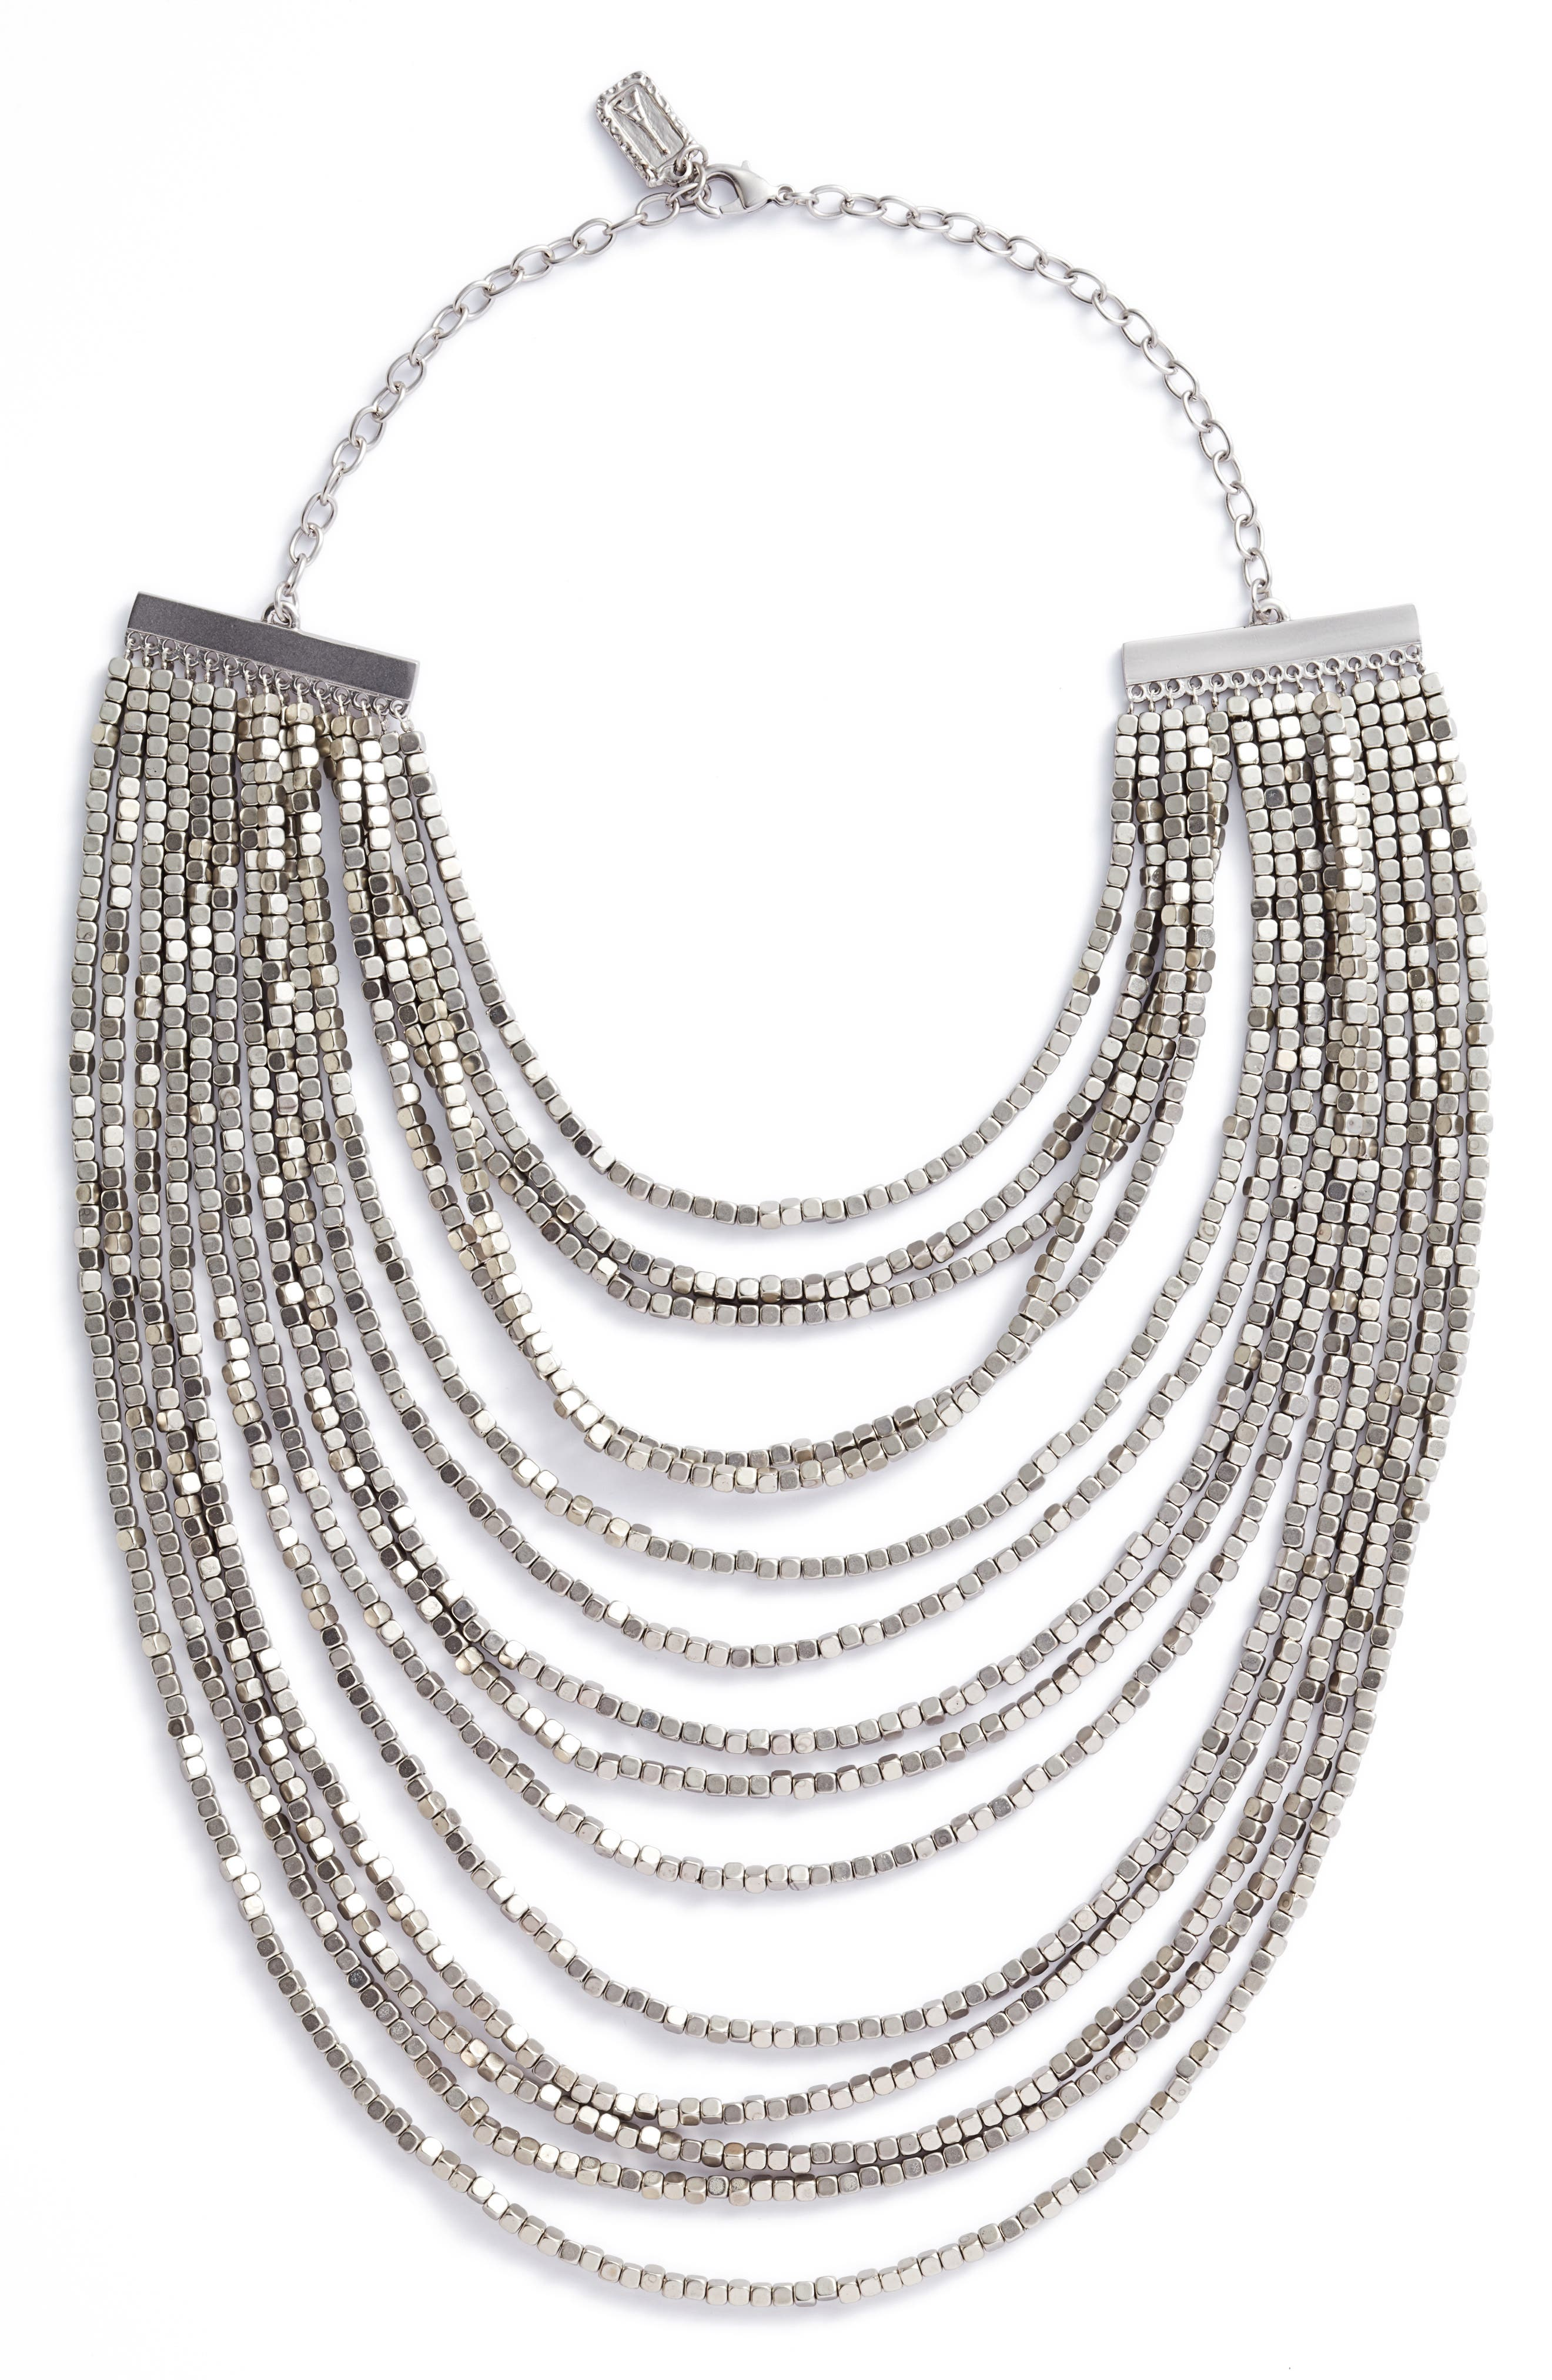 Joan Beaded Multistrand Necklace,                             Main thumbnail 1, color,                             SILVER